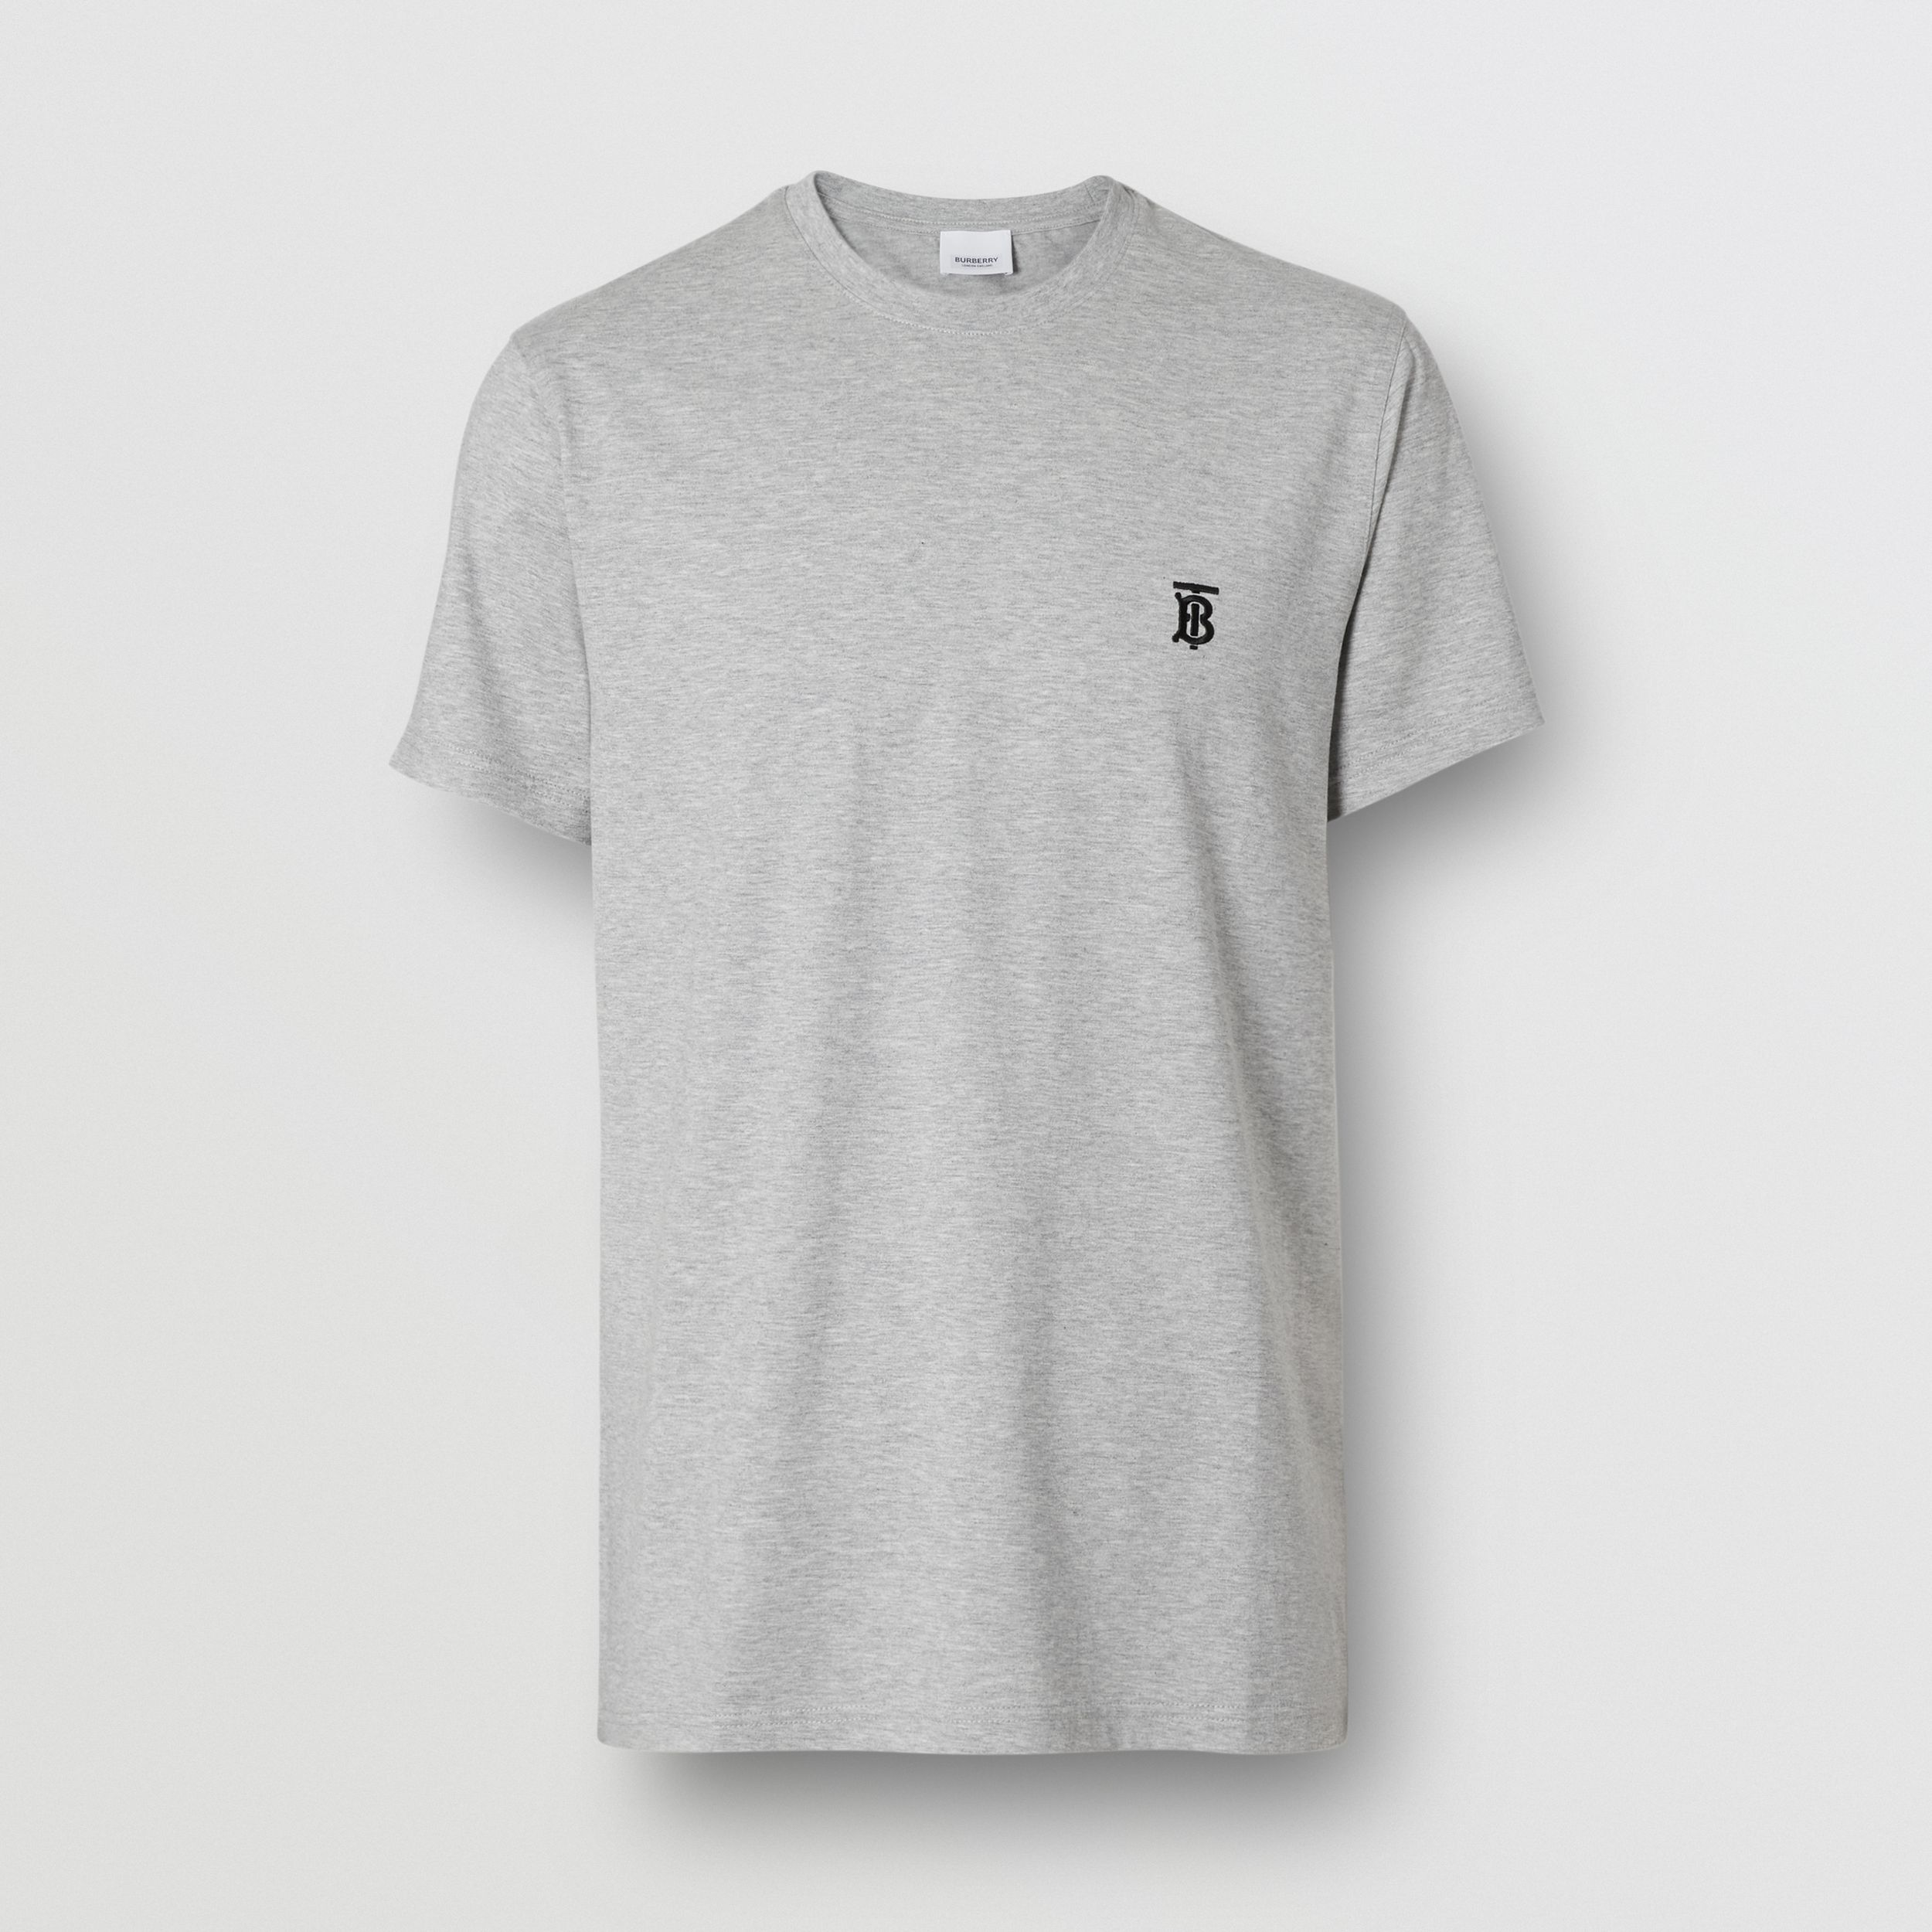 Monogram Motif Cotton T-shirt in Pale Grey Melange - Men | Burberry - 4